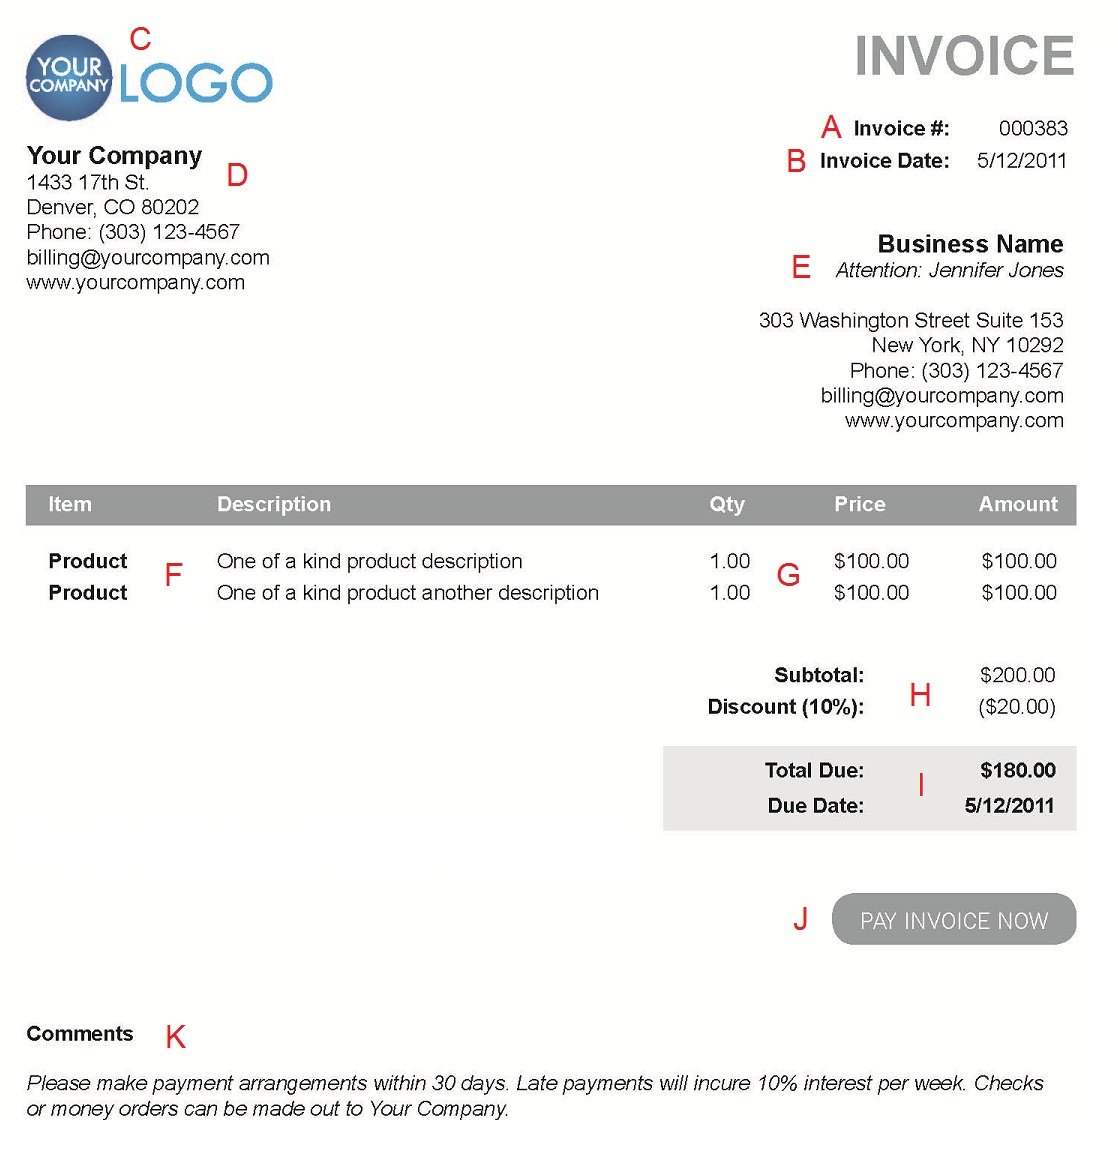 Coolmathgamesus  Nice The  Different Sections Of An Electronic Payment Invoice With Heavenly A  With Astonishing Outlook Return Receipt Also Create Receipts For Expenses In Addition Delivery Confirmation Receipt And London Black Cab Receipt As Well As Carpet Cleaning Receipt Additionally Sample Receipt For Land Purchase From Paysimplecom With Coolmathgamesus  Heavenly The  Different Sections Of An Electronic Payment Invoice With Astonishing A  And Nice Outlook Return Receipt Also Create Receipts For Expenses In Addition Delivery Confirmation Receipt From Paysimplecom